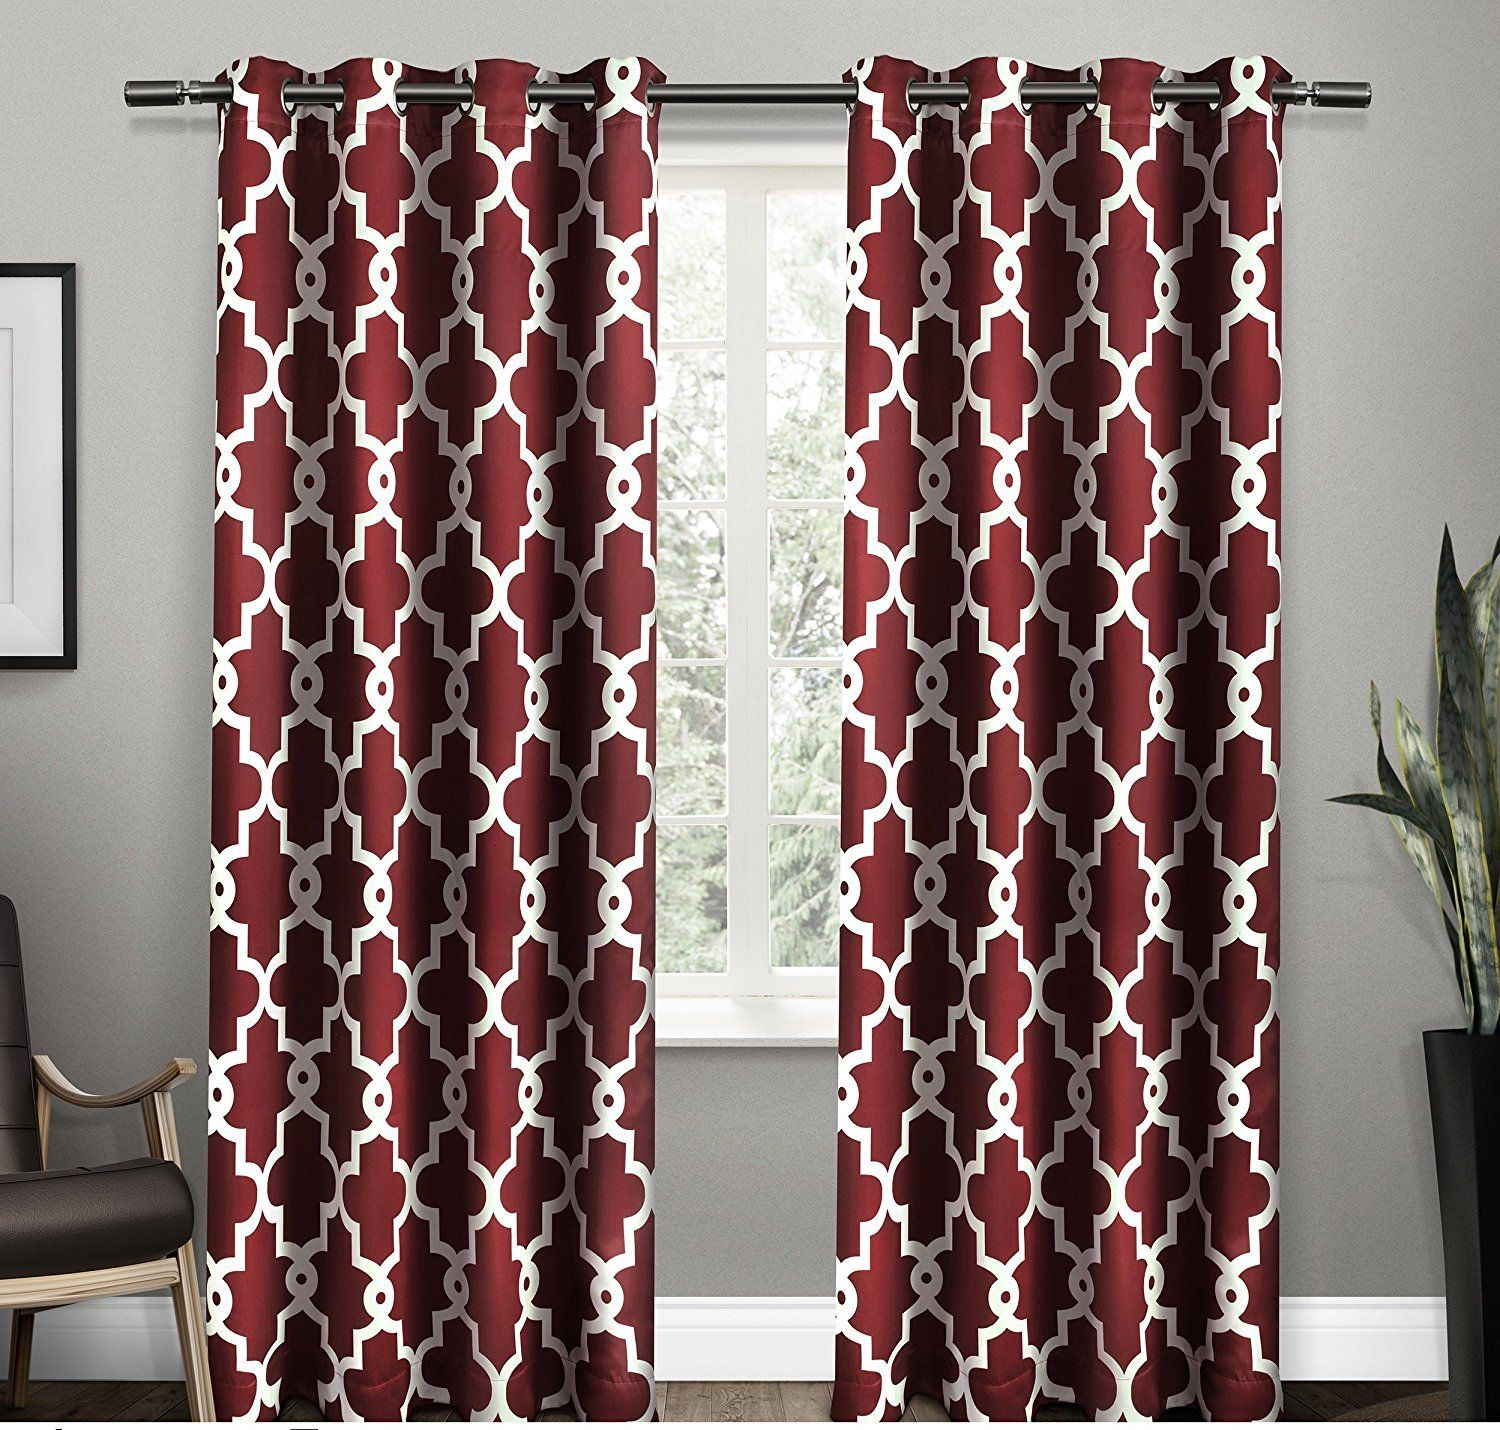 Design Collection Marvellous Bedrooms Dark Red Curtains 50 New Inspiration